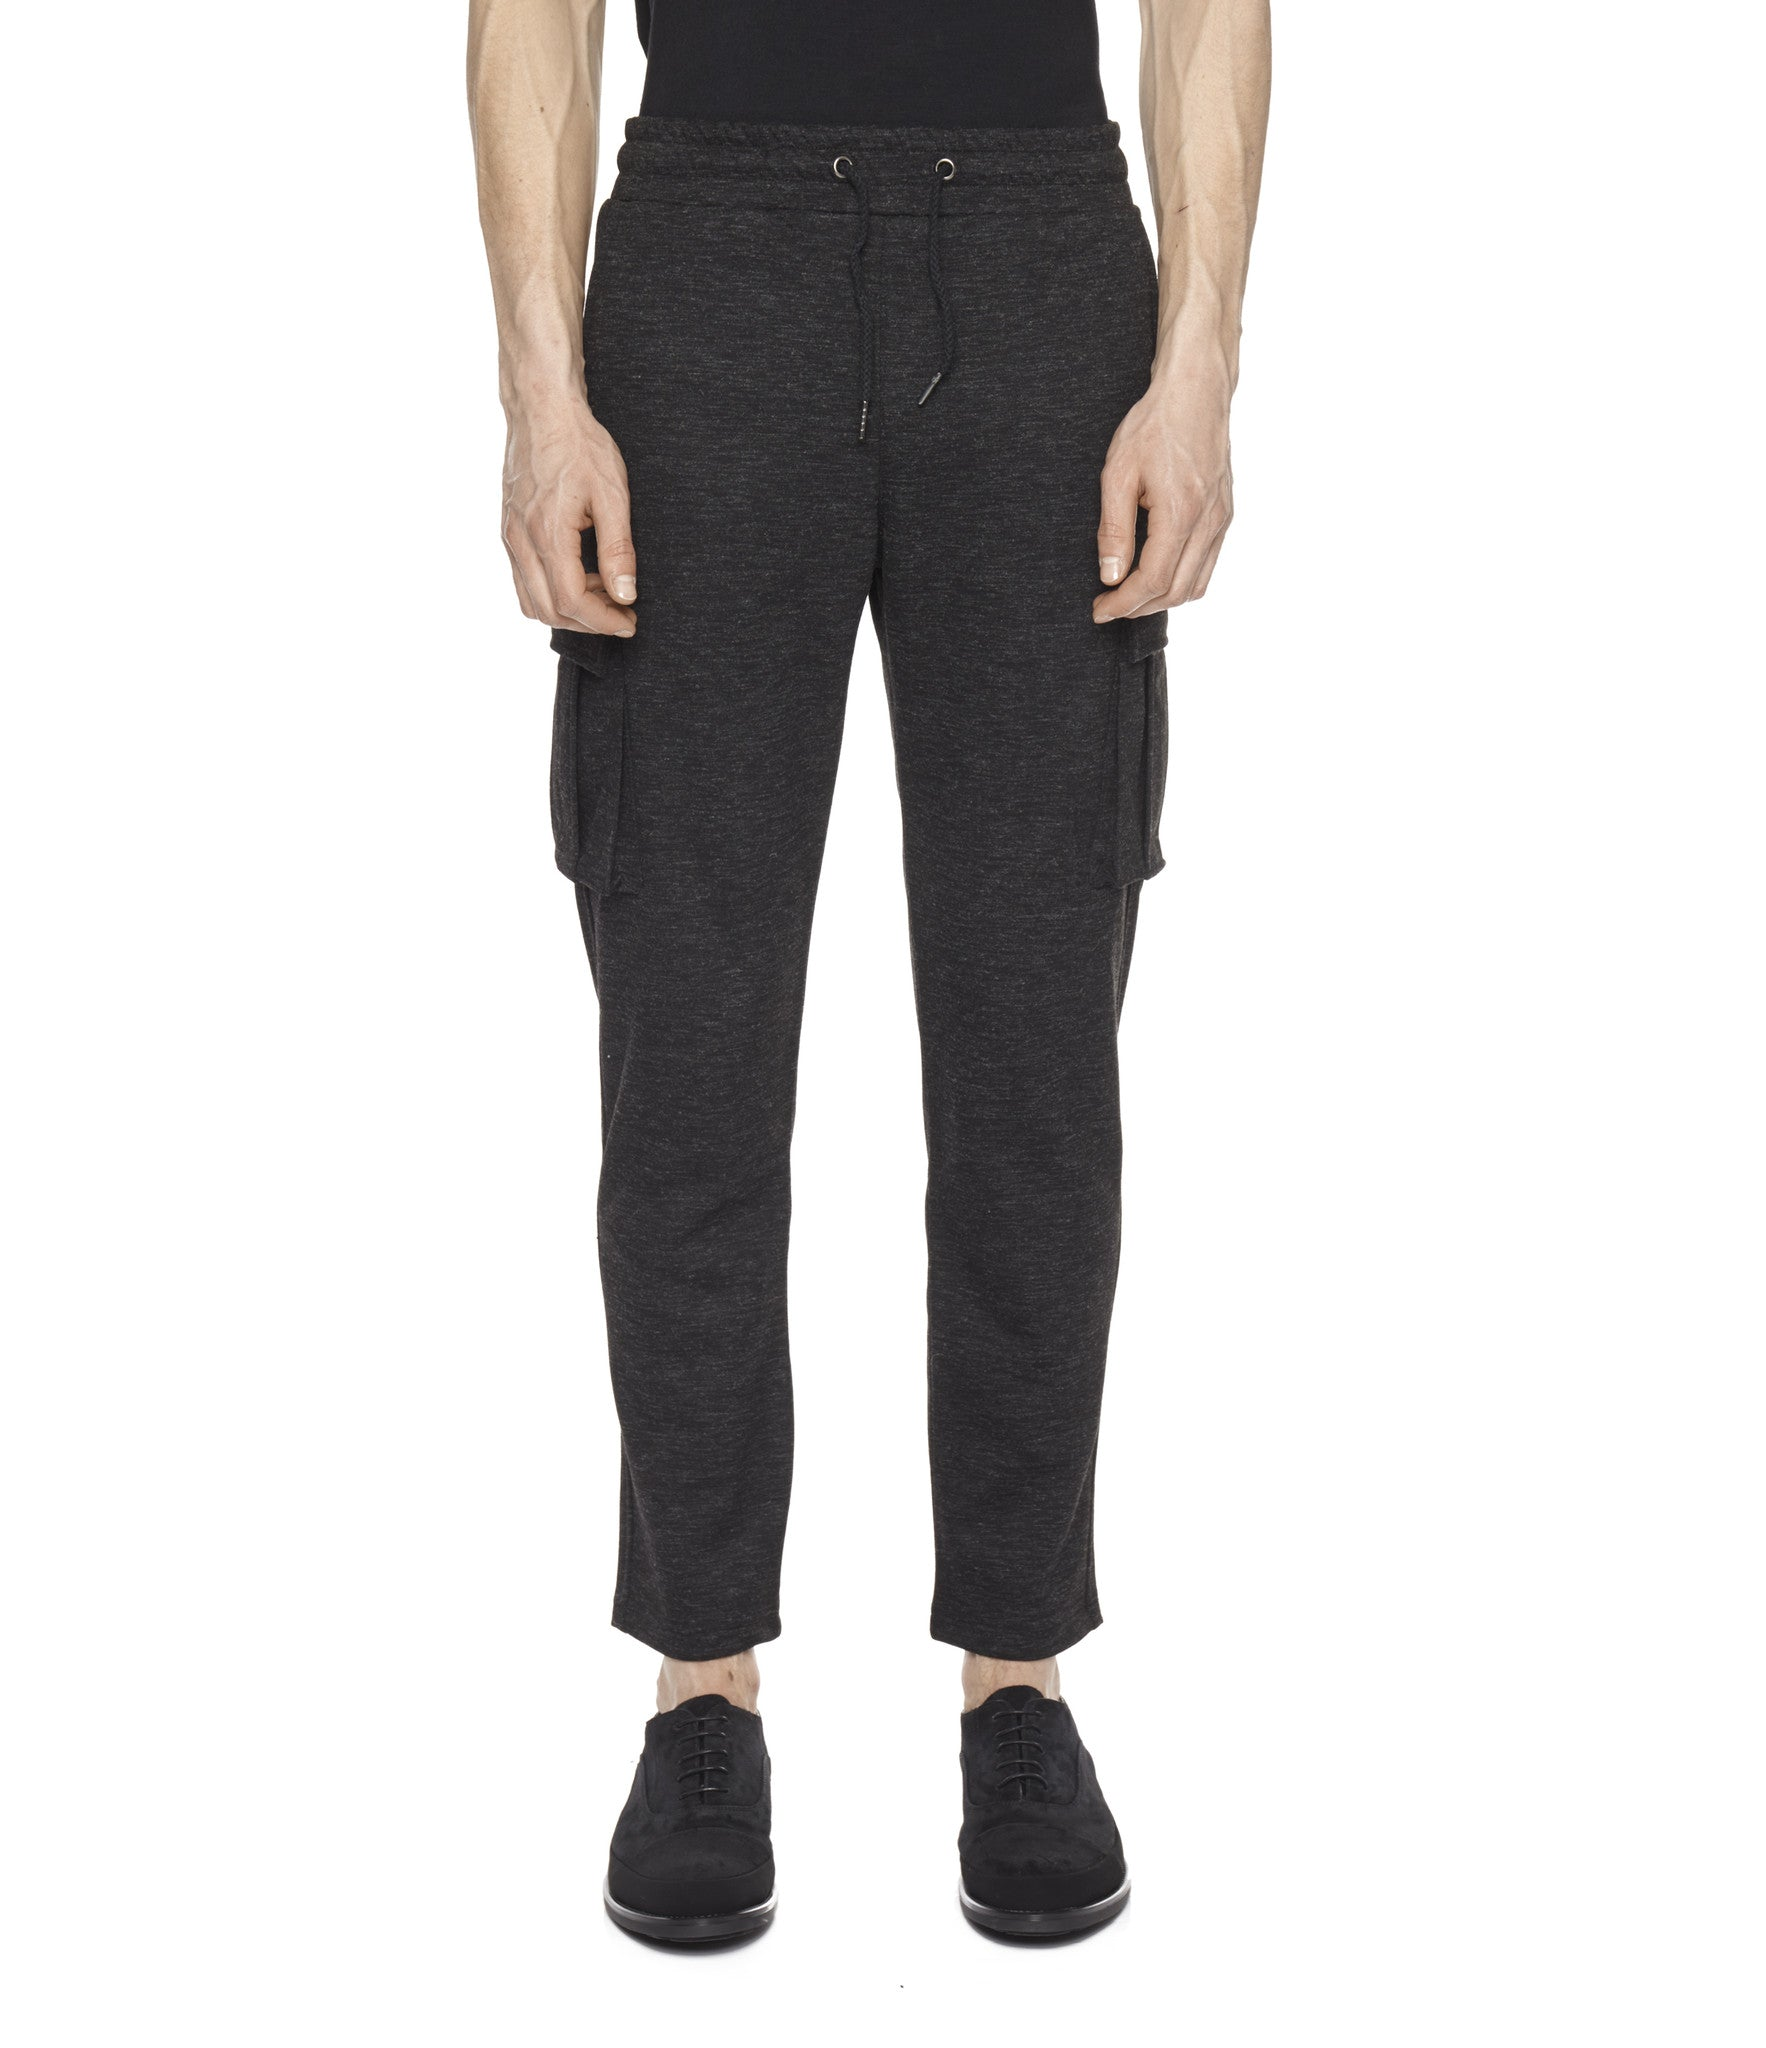 TR253 Wool Blend Cropped Cargo Pants - Black - underated london - underatedco - 4